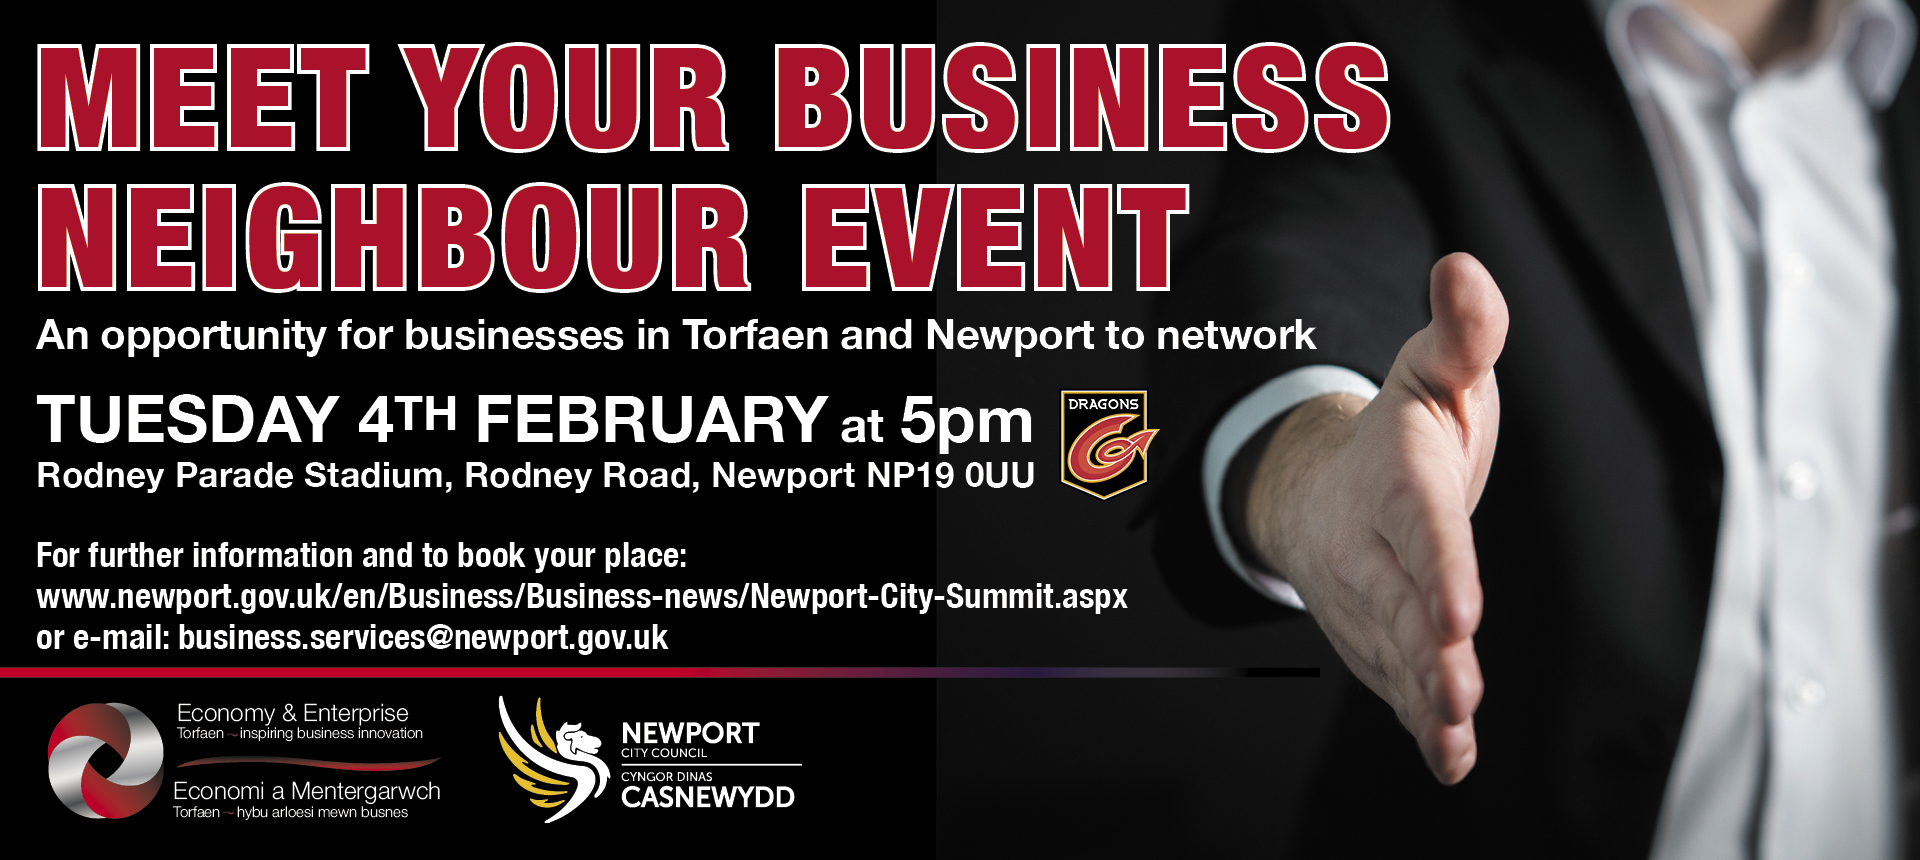 Meet Your Business Neighbour Event